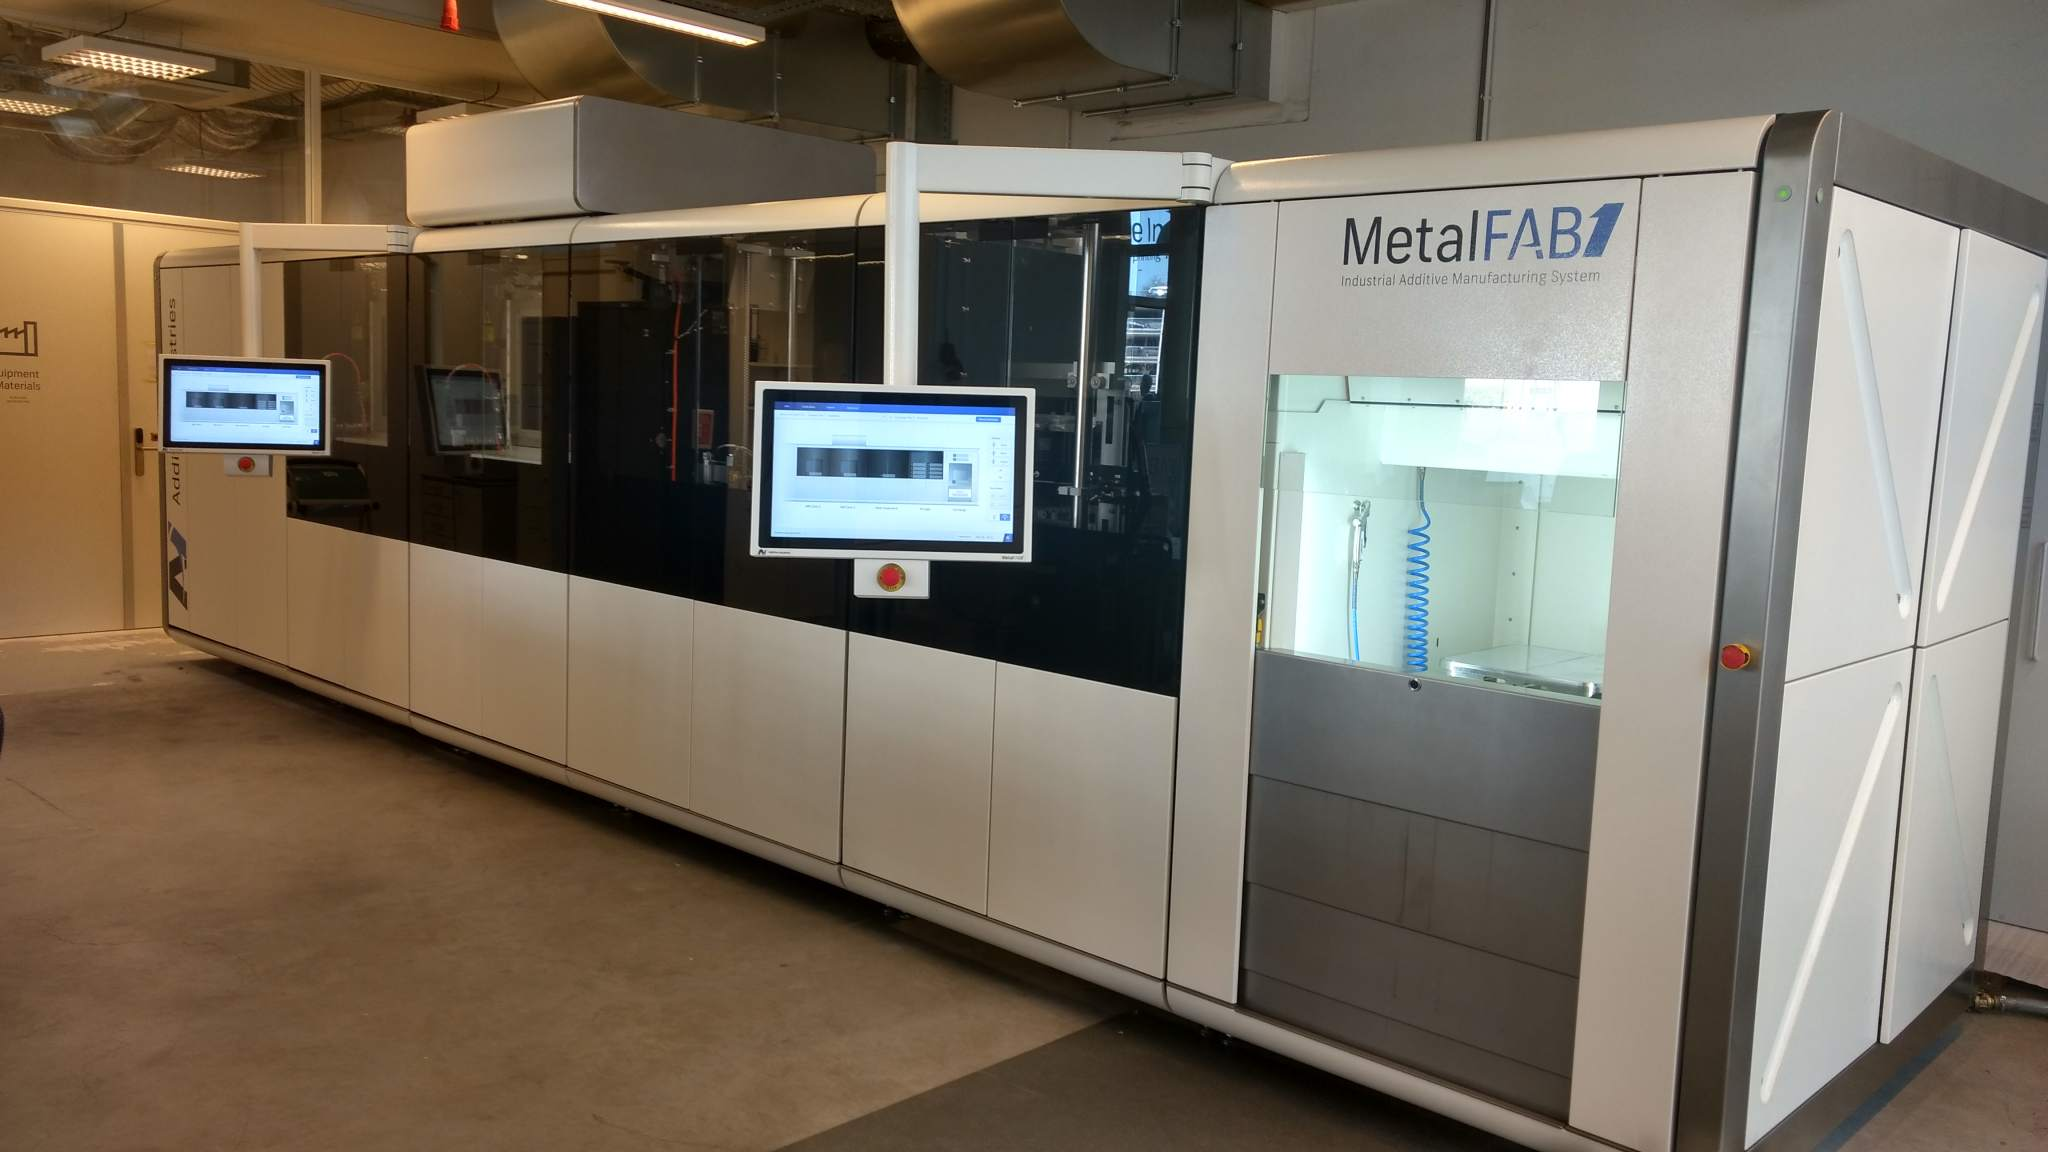 The MetalFAB1 machine at Additive Industries HQ. Photo by Corey Clarke.